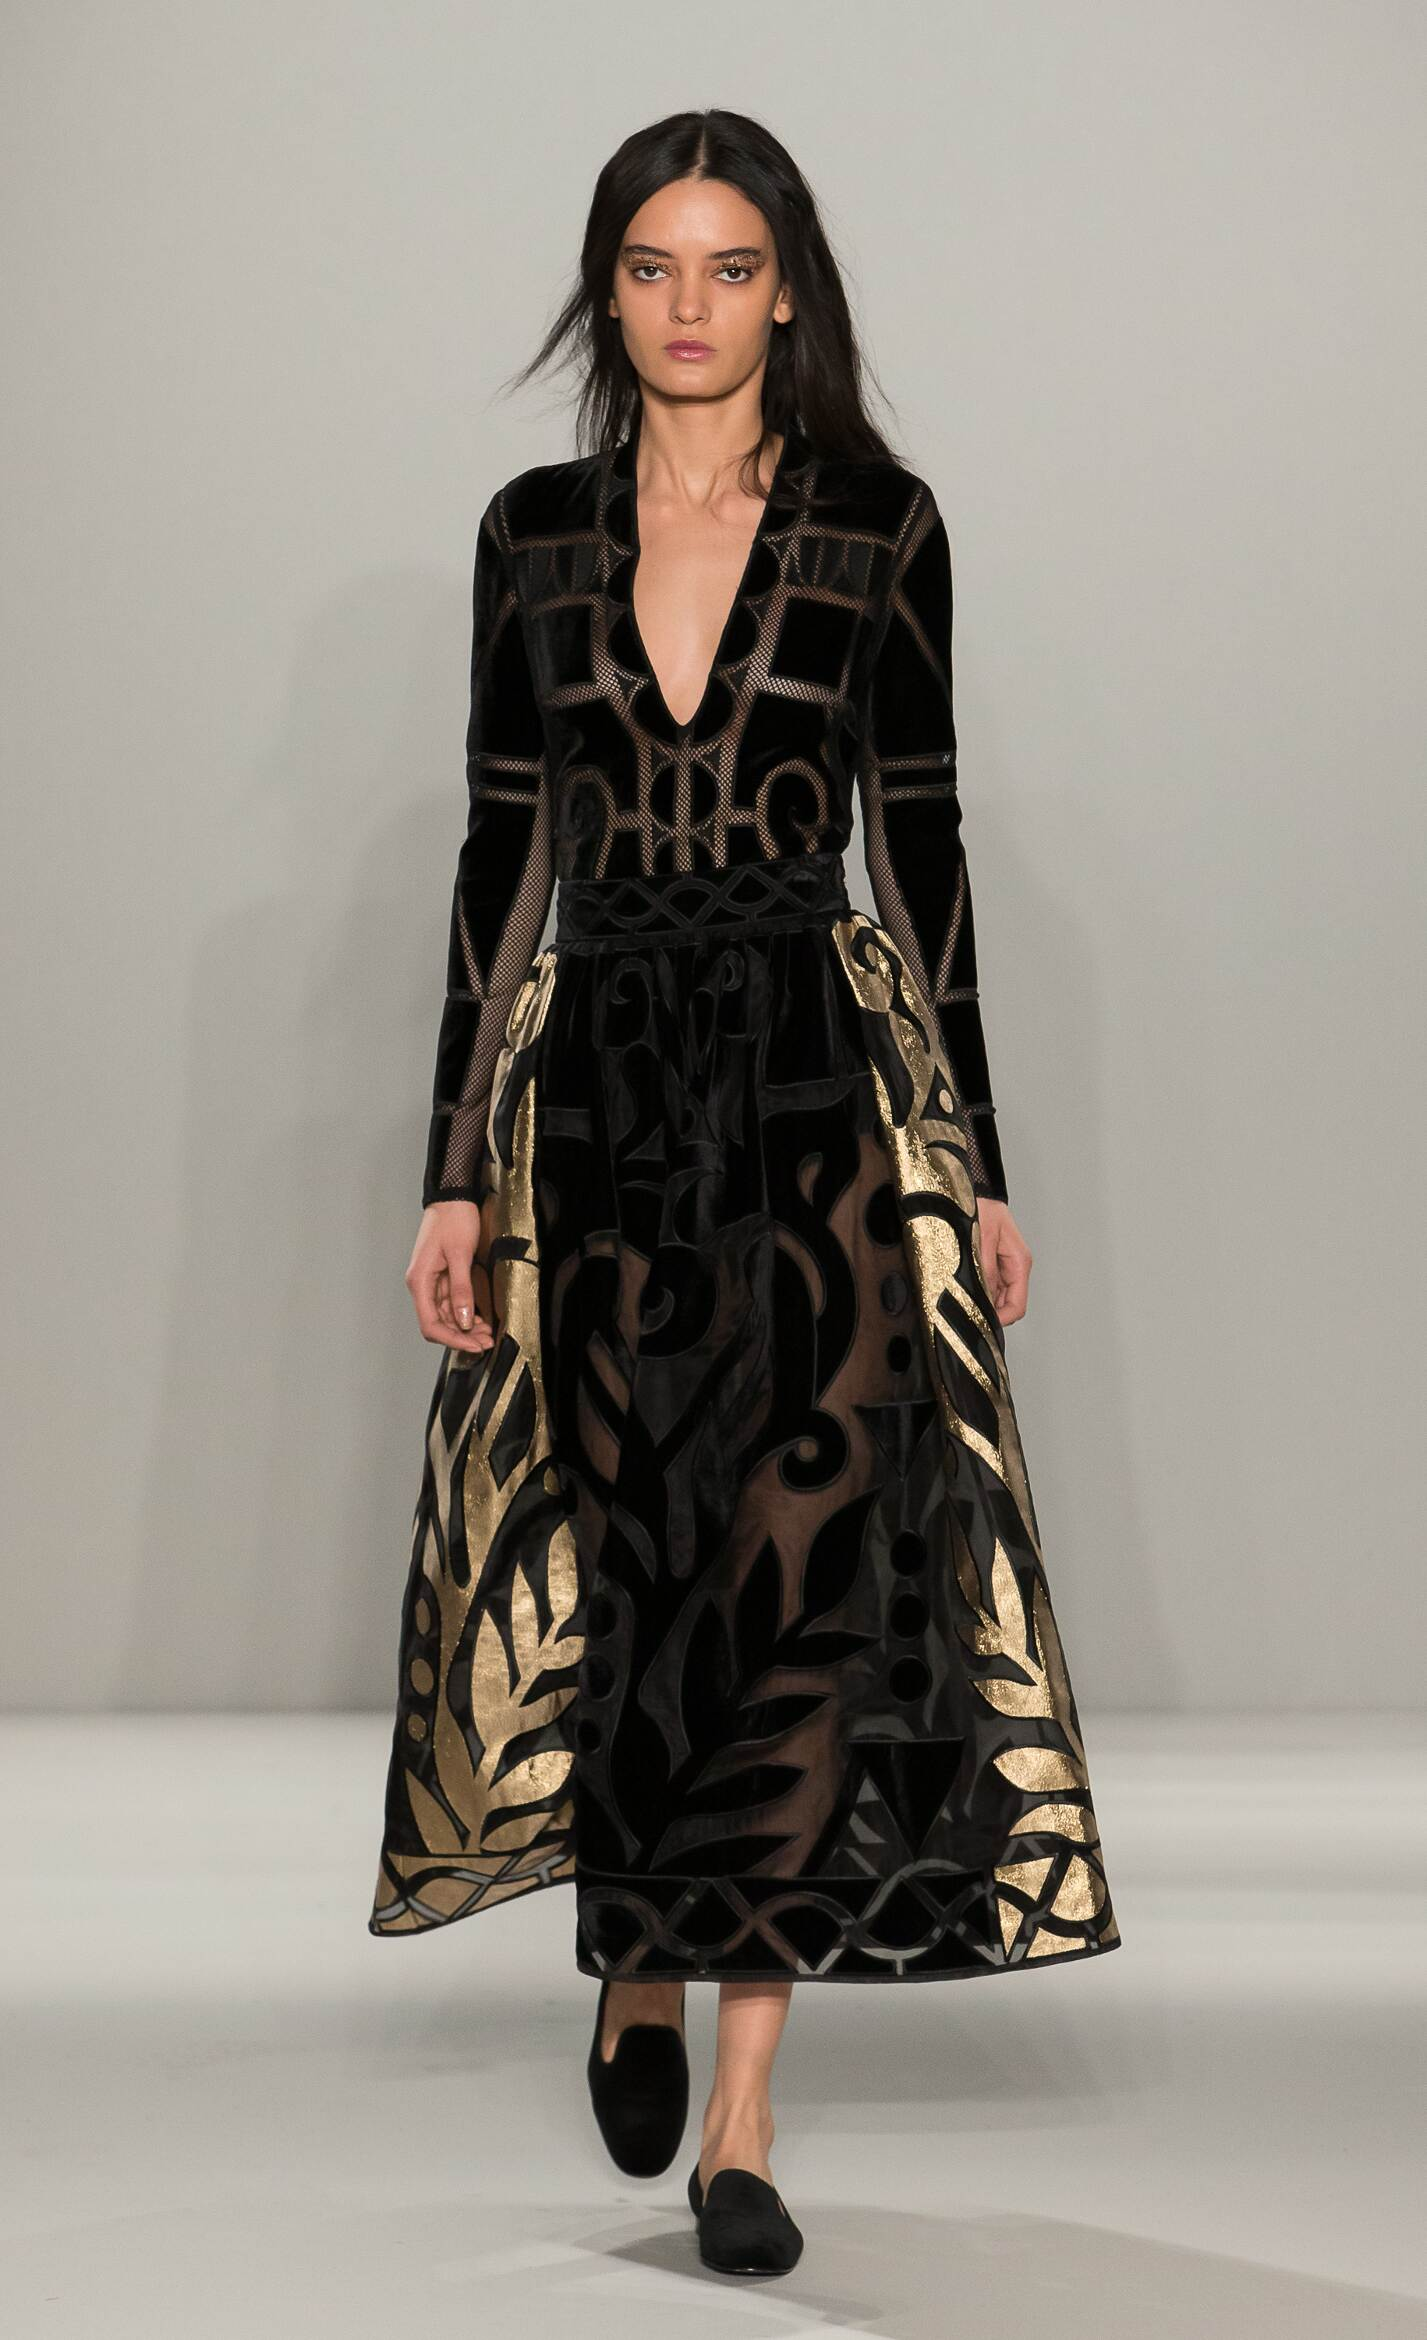 Winter Fashion Trends 2015 2016 Temperley London Collection